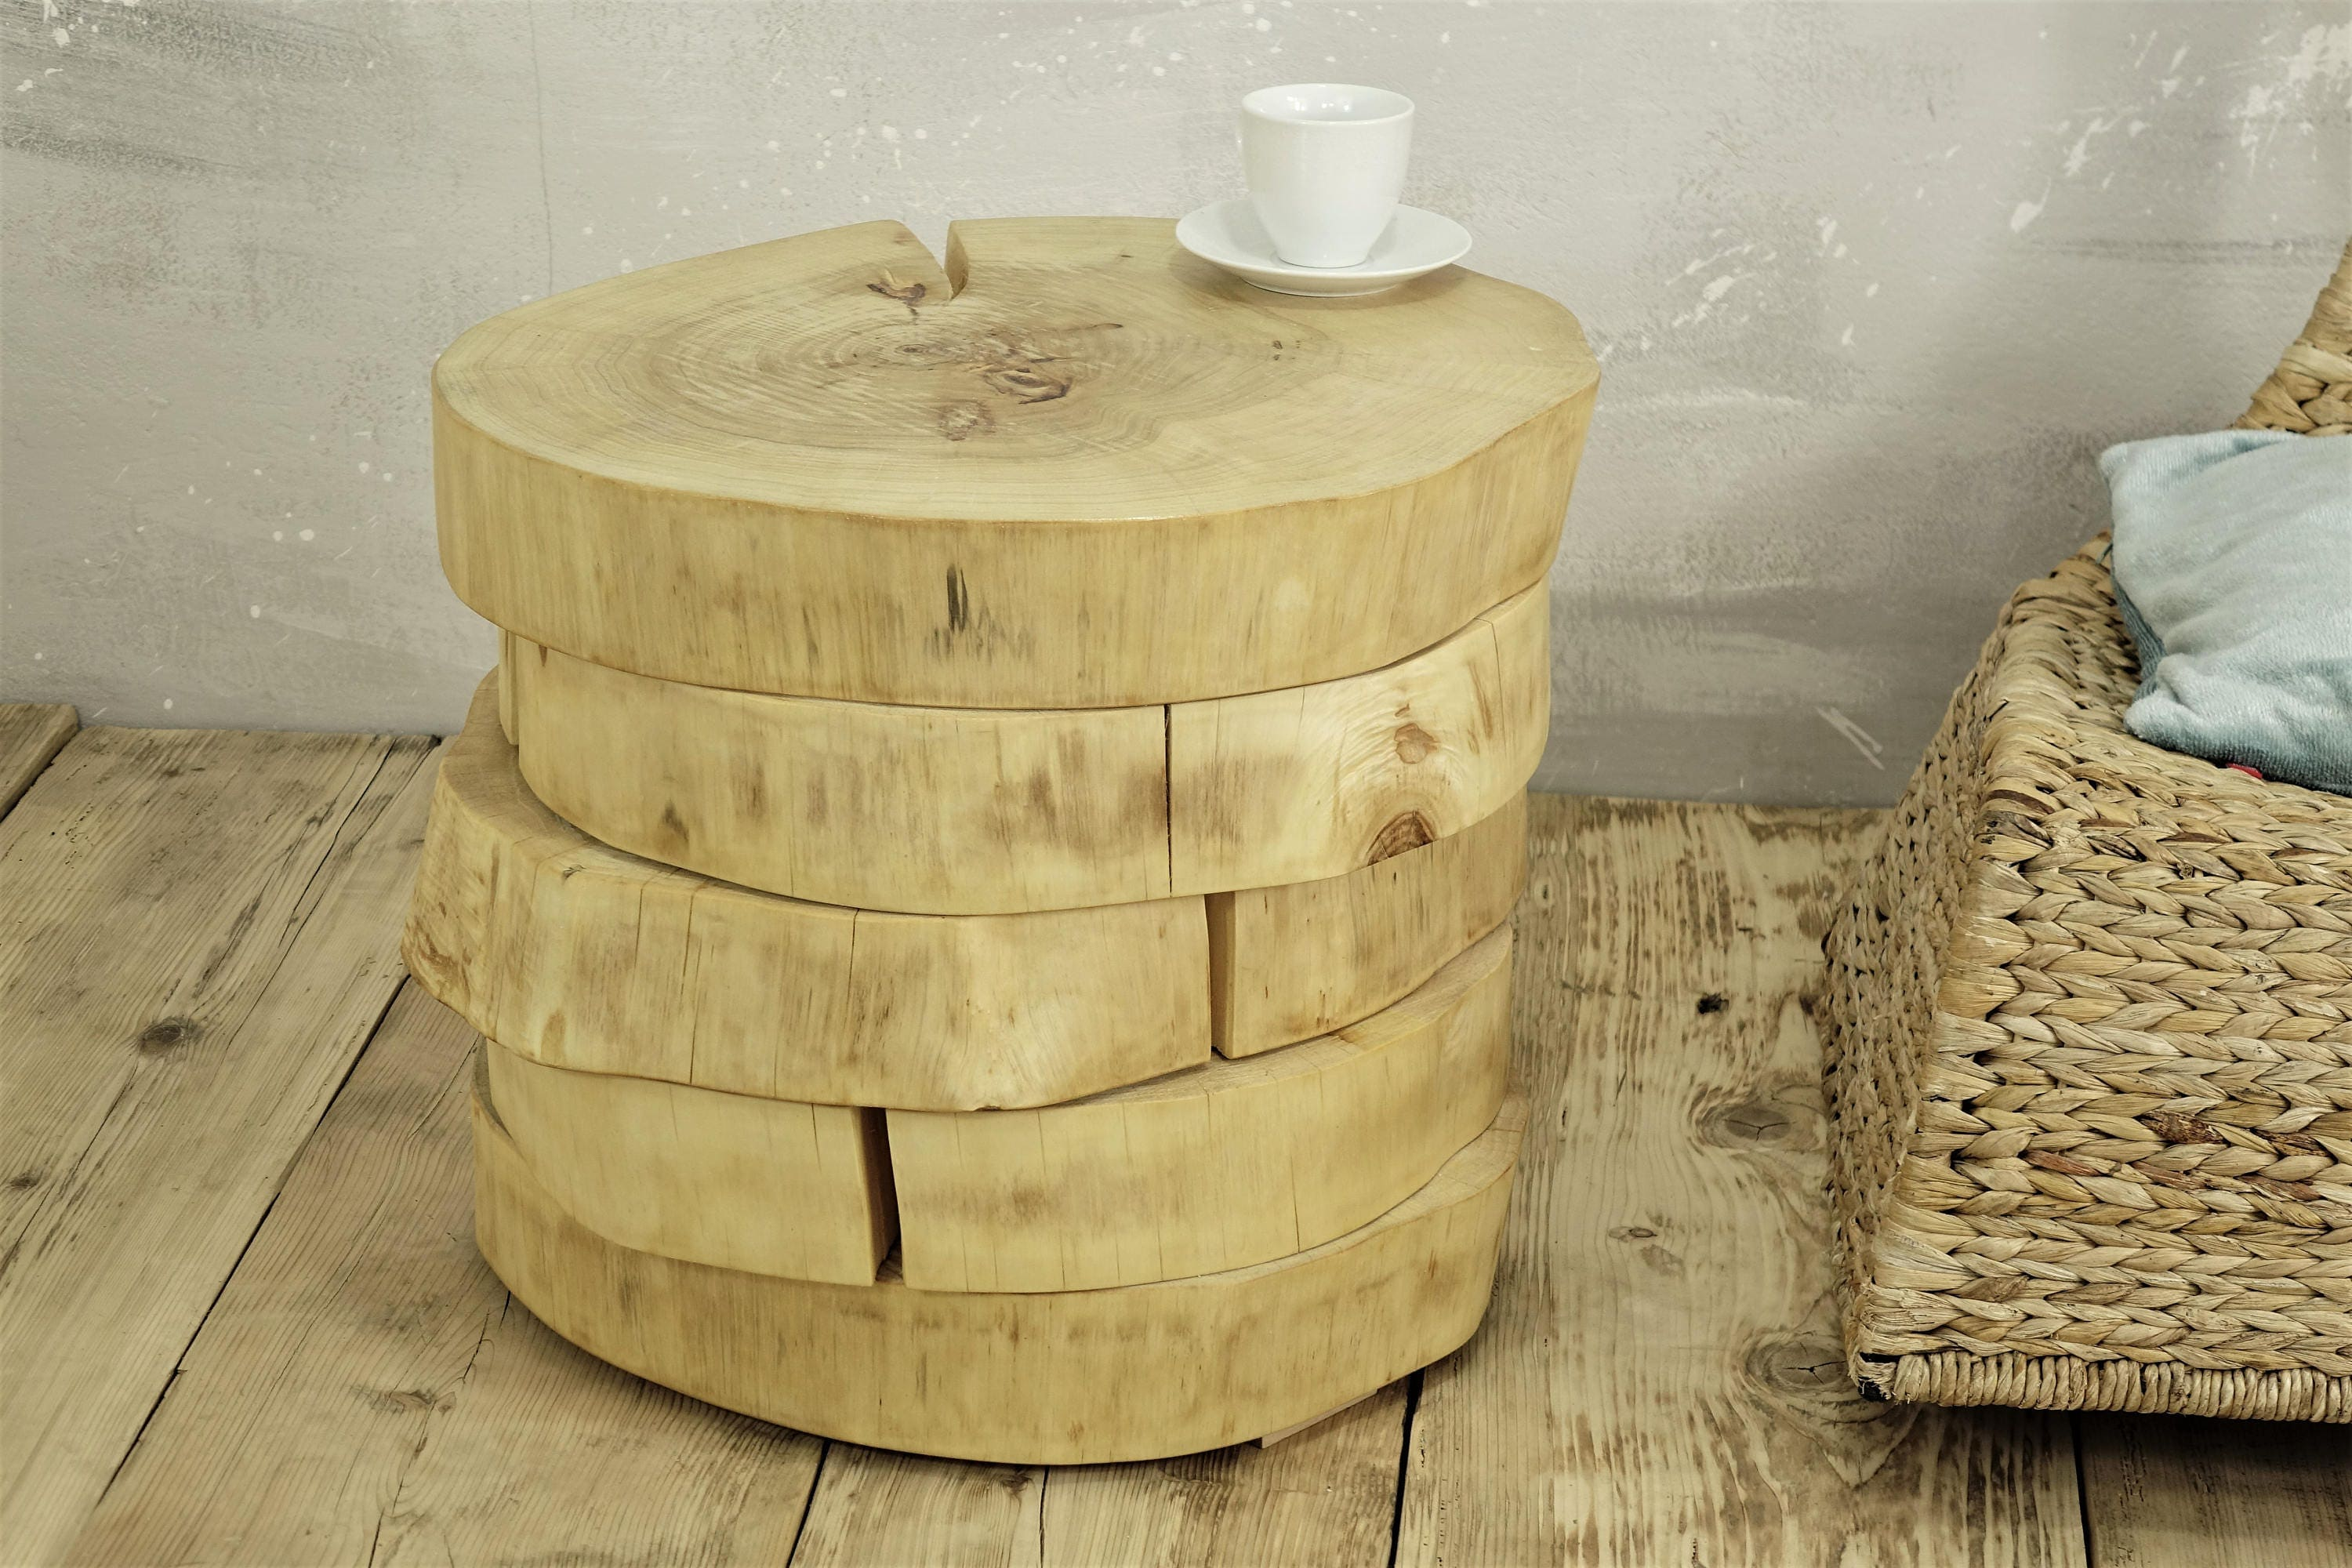 tree slabs side table wooden slices side table table tree trunk table on rolling casters natural colour baumstamm tisch hocker holz